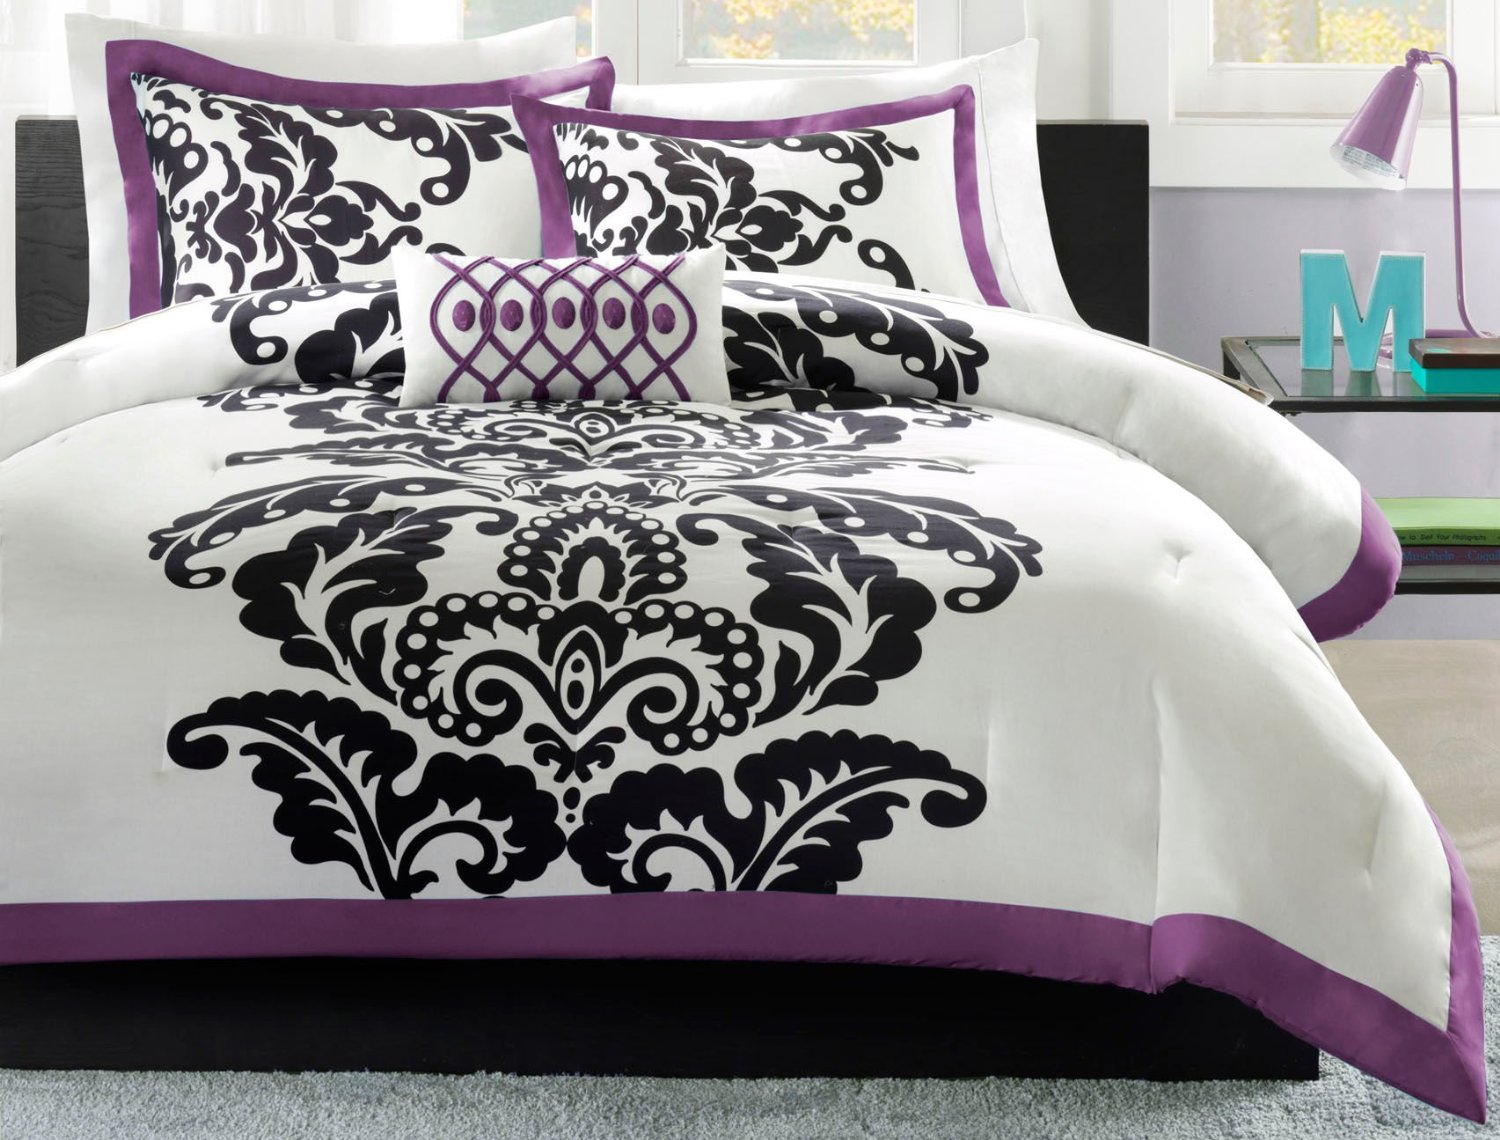 set full and comforter sets white pillowcase combined awesome photo ideas best tree comforters of black tufted pattern superb x